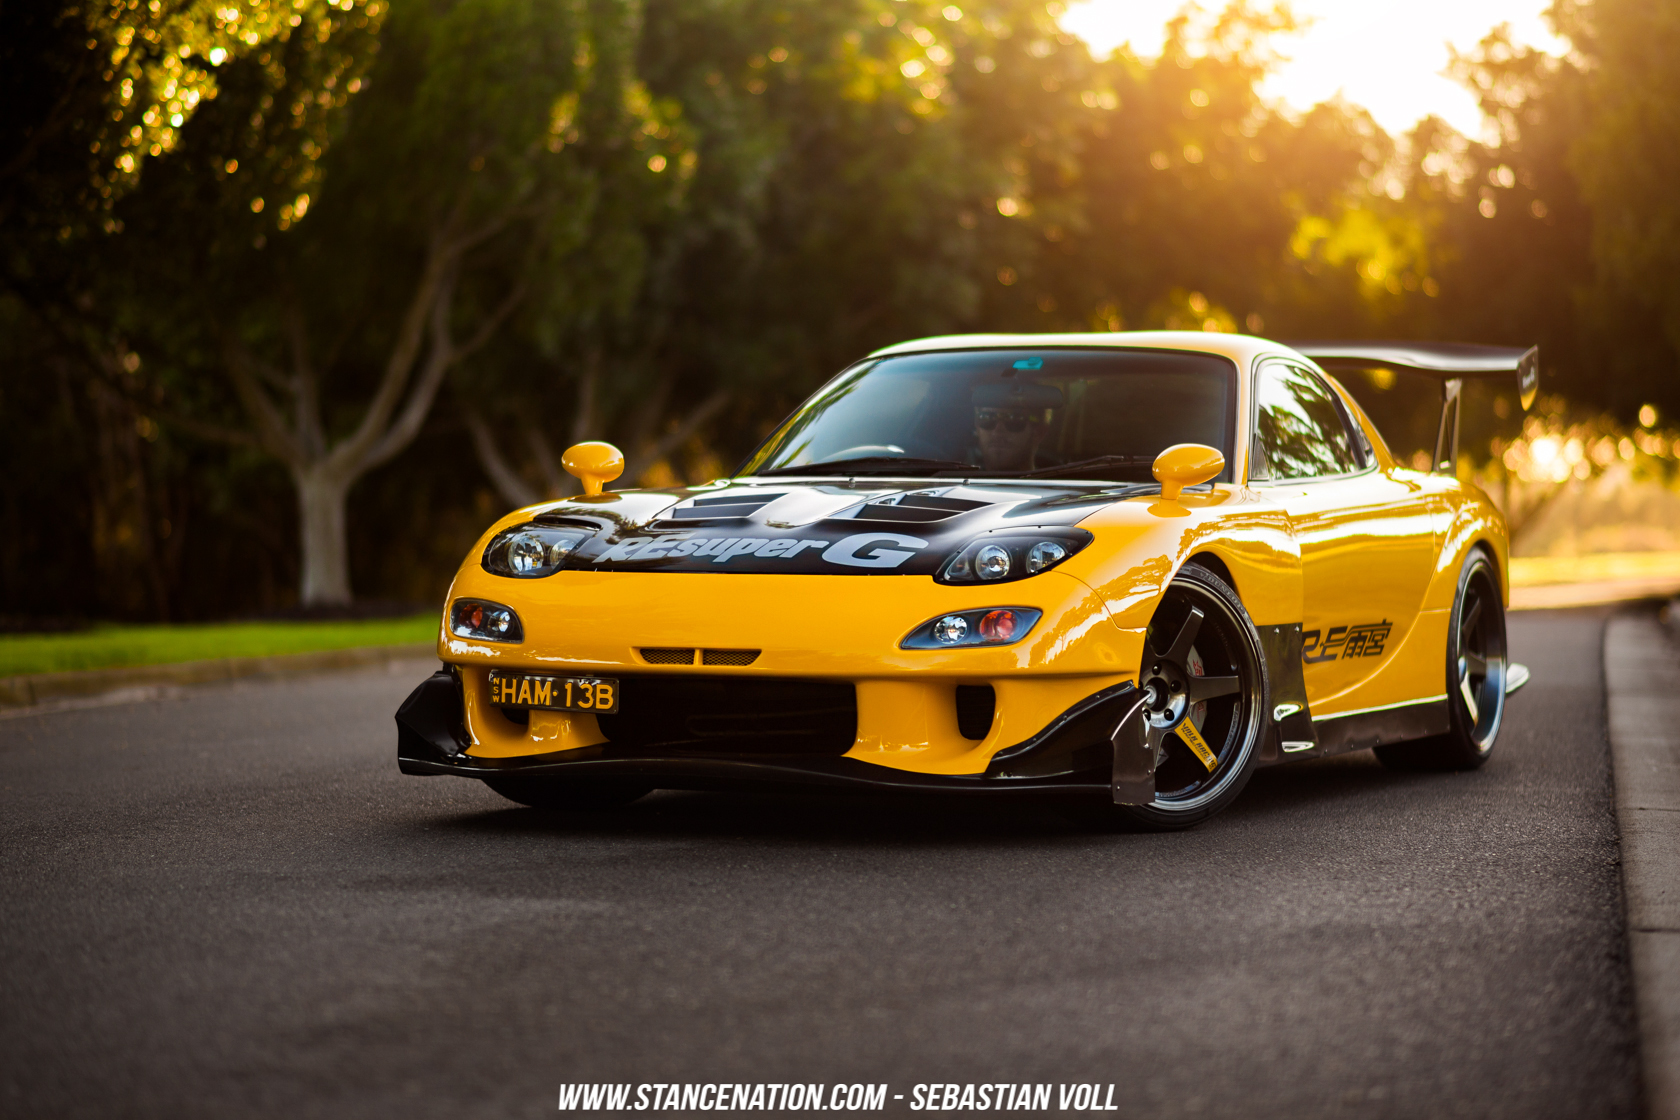 Fastest Car In The World Wallpaper Respect The Legends Graham S Re Amemiya Fd3s Rx 7